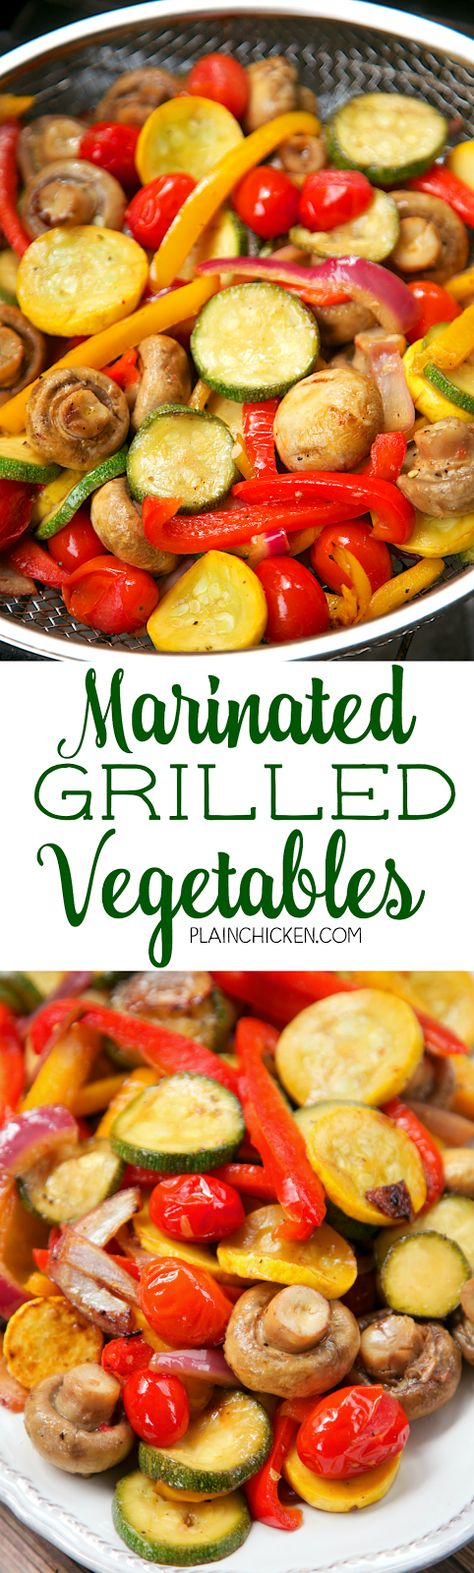 Marinated Grilled Vegetables - zucchini, squash, mushrooms, tomatoes, red bell pepper, yellow bell pepper and red onion marinated in olive oil, soy sauce, lemon juice and garlic. Marinate veggies for 30 minutes and grill. Ready in about 15 minutes! SO easy and SO delicious! Everyone loves these vegetables! Use leftovers in a quiche.